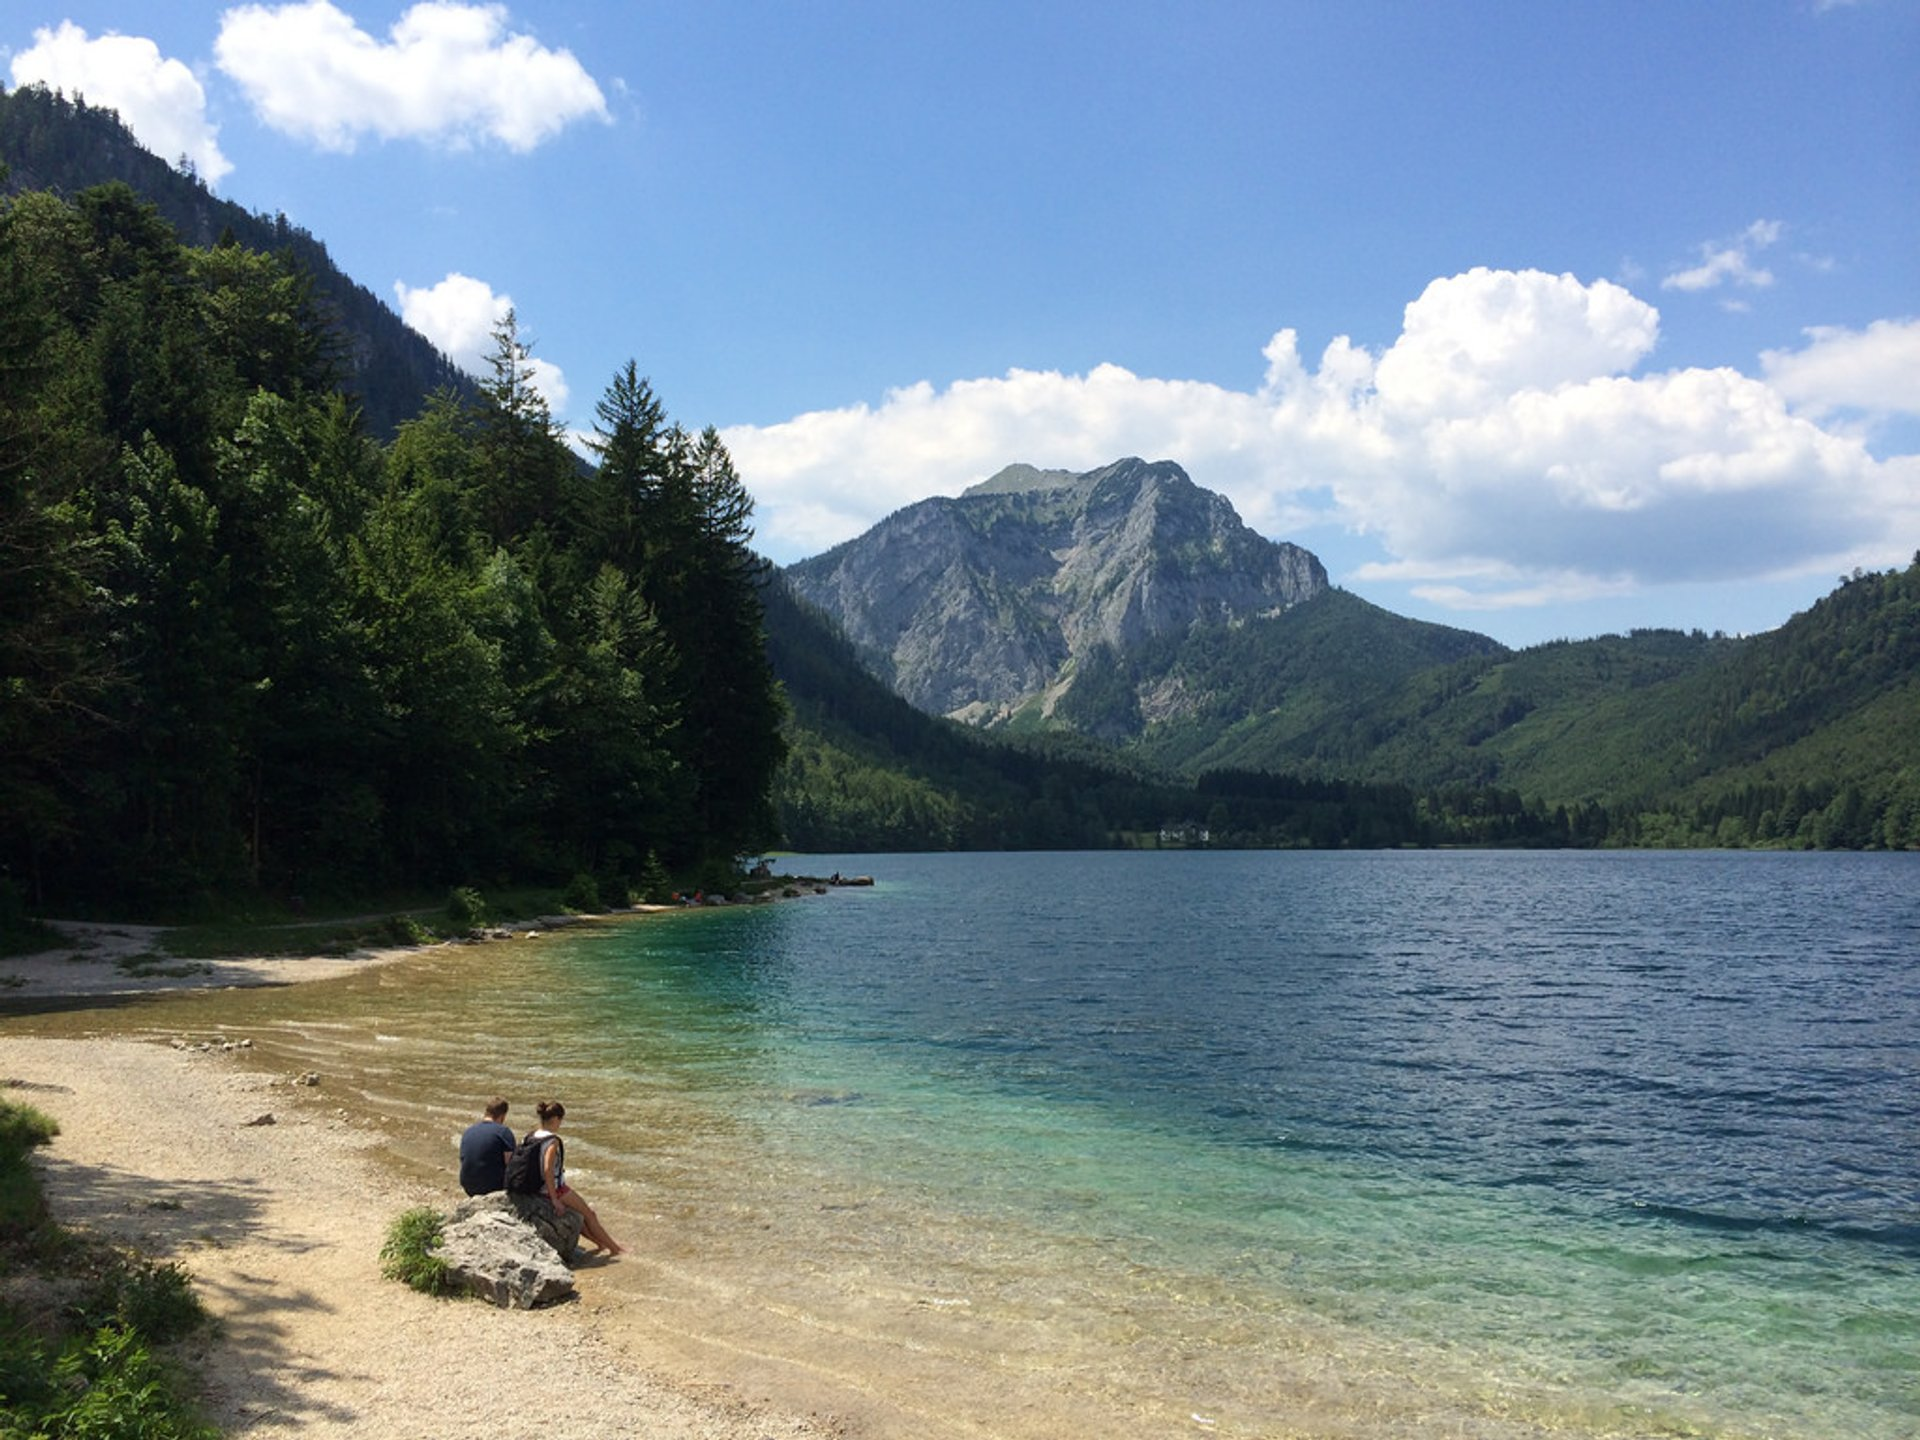 Lake Holidays Season in Austria - Best Season 2019